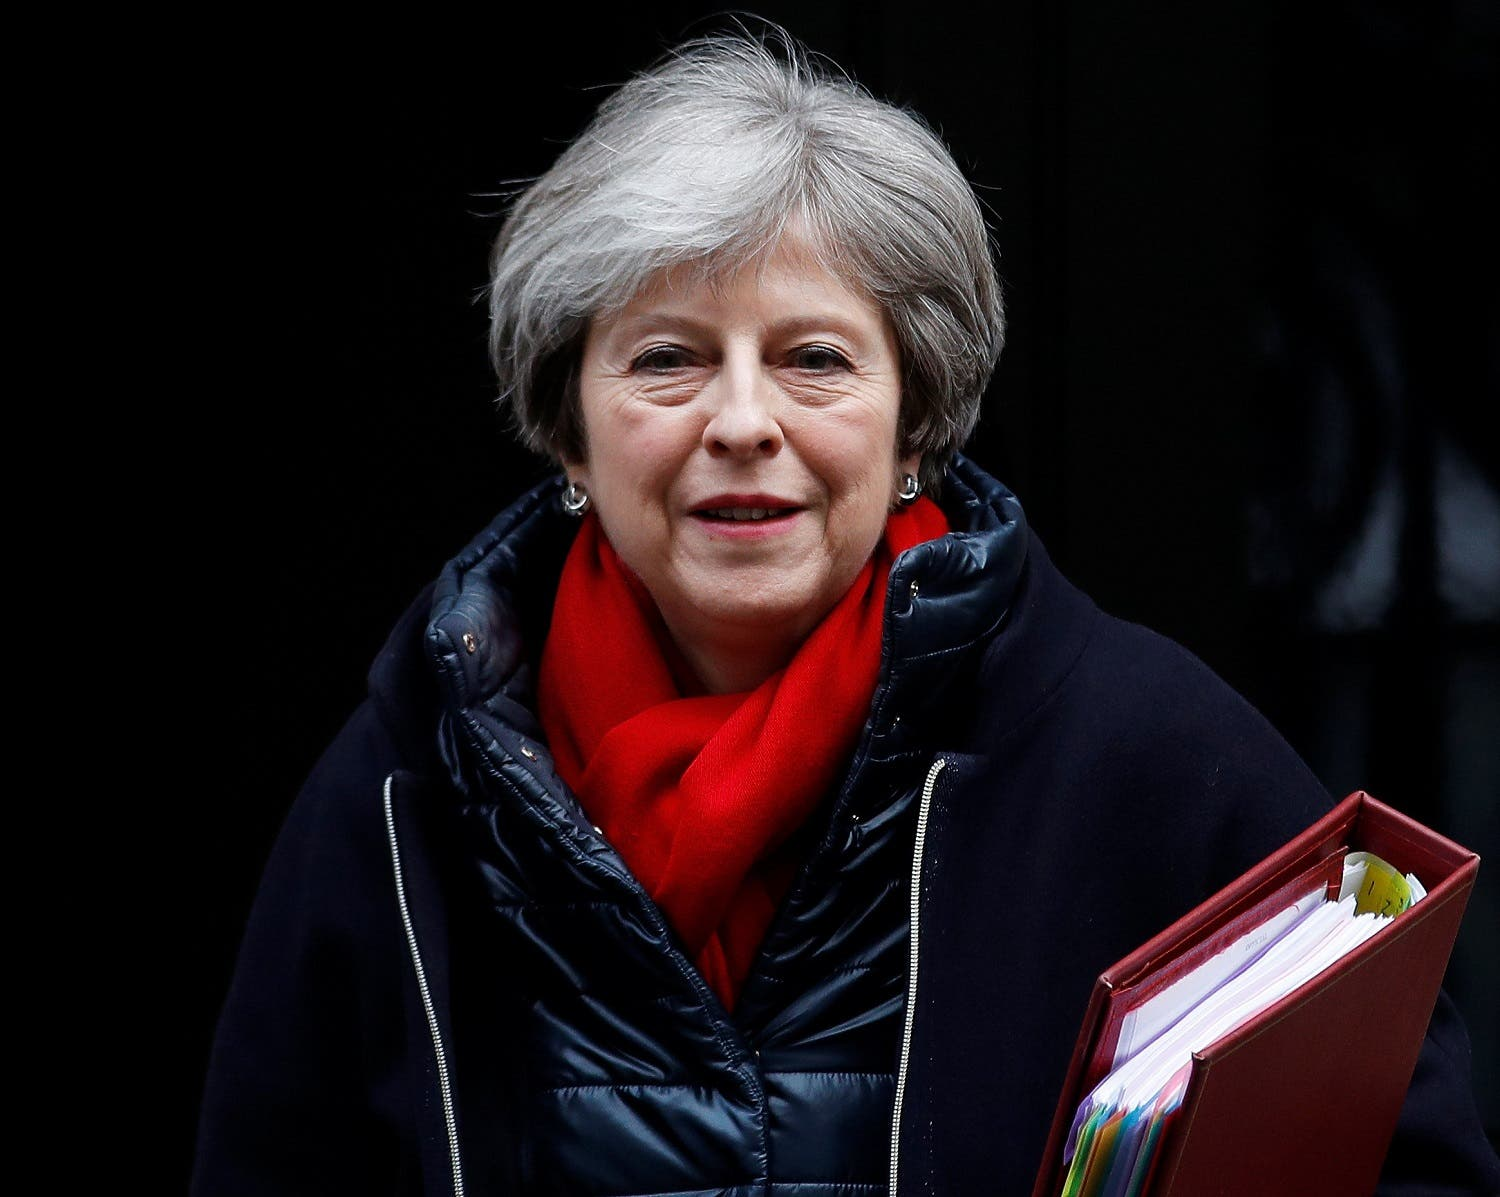 Britain's Prime Minister Theresa May leaves 10 Downing Street in London, on February 7, 2018. (Reuters)